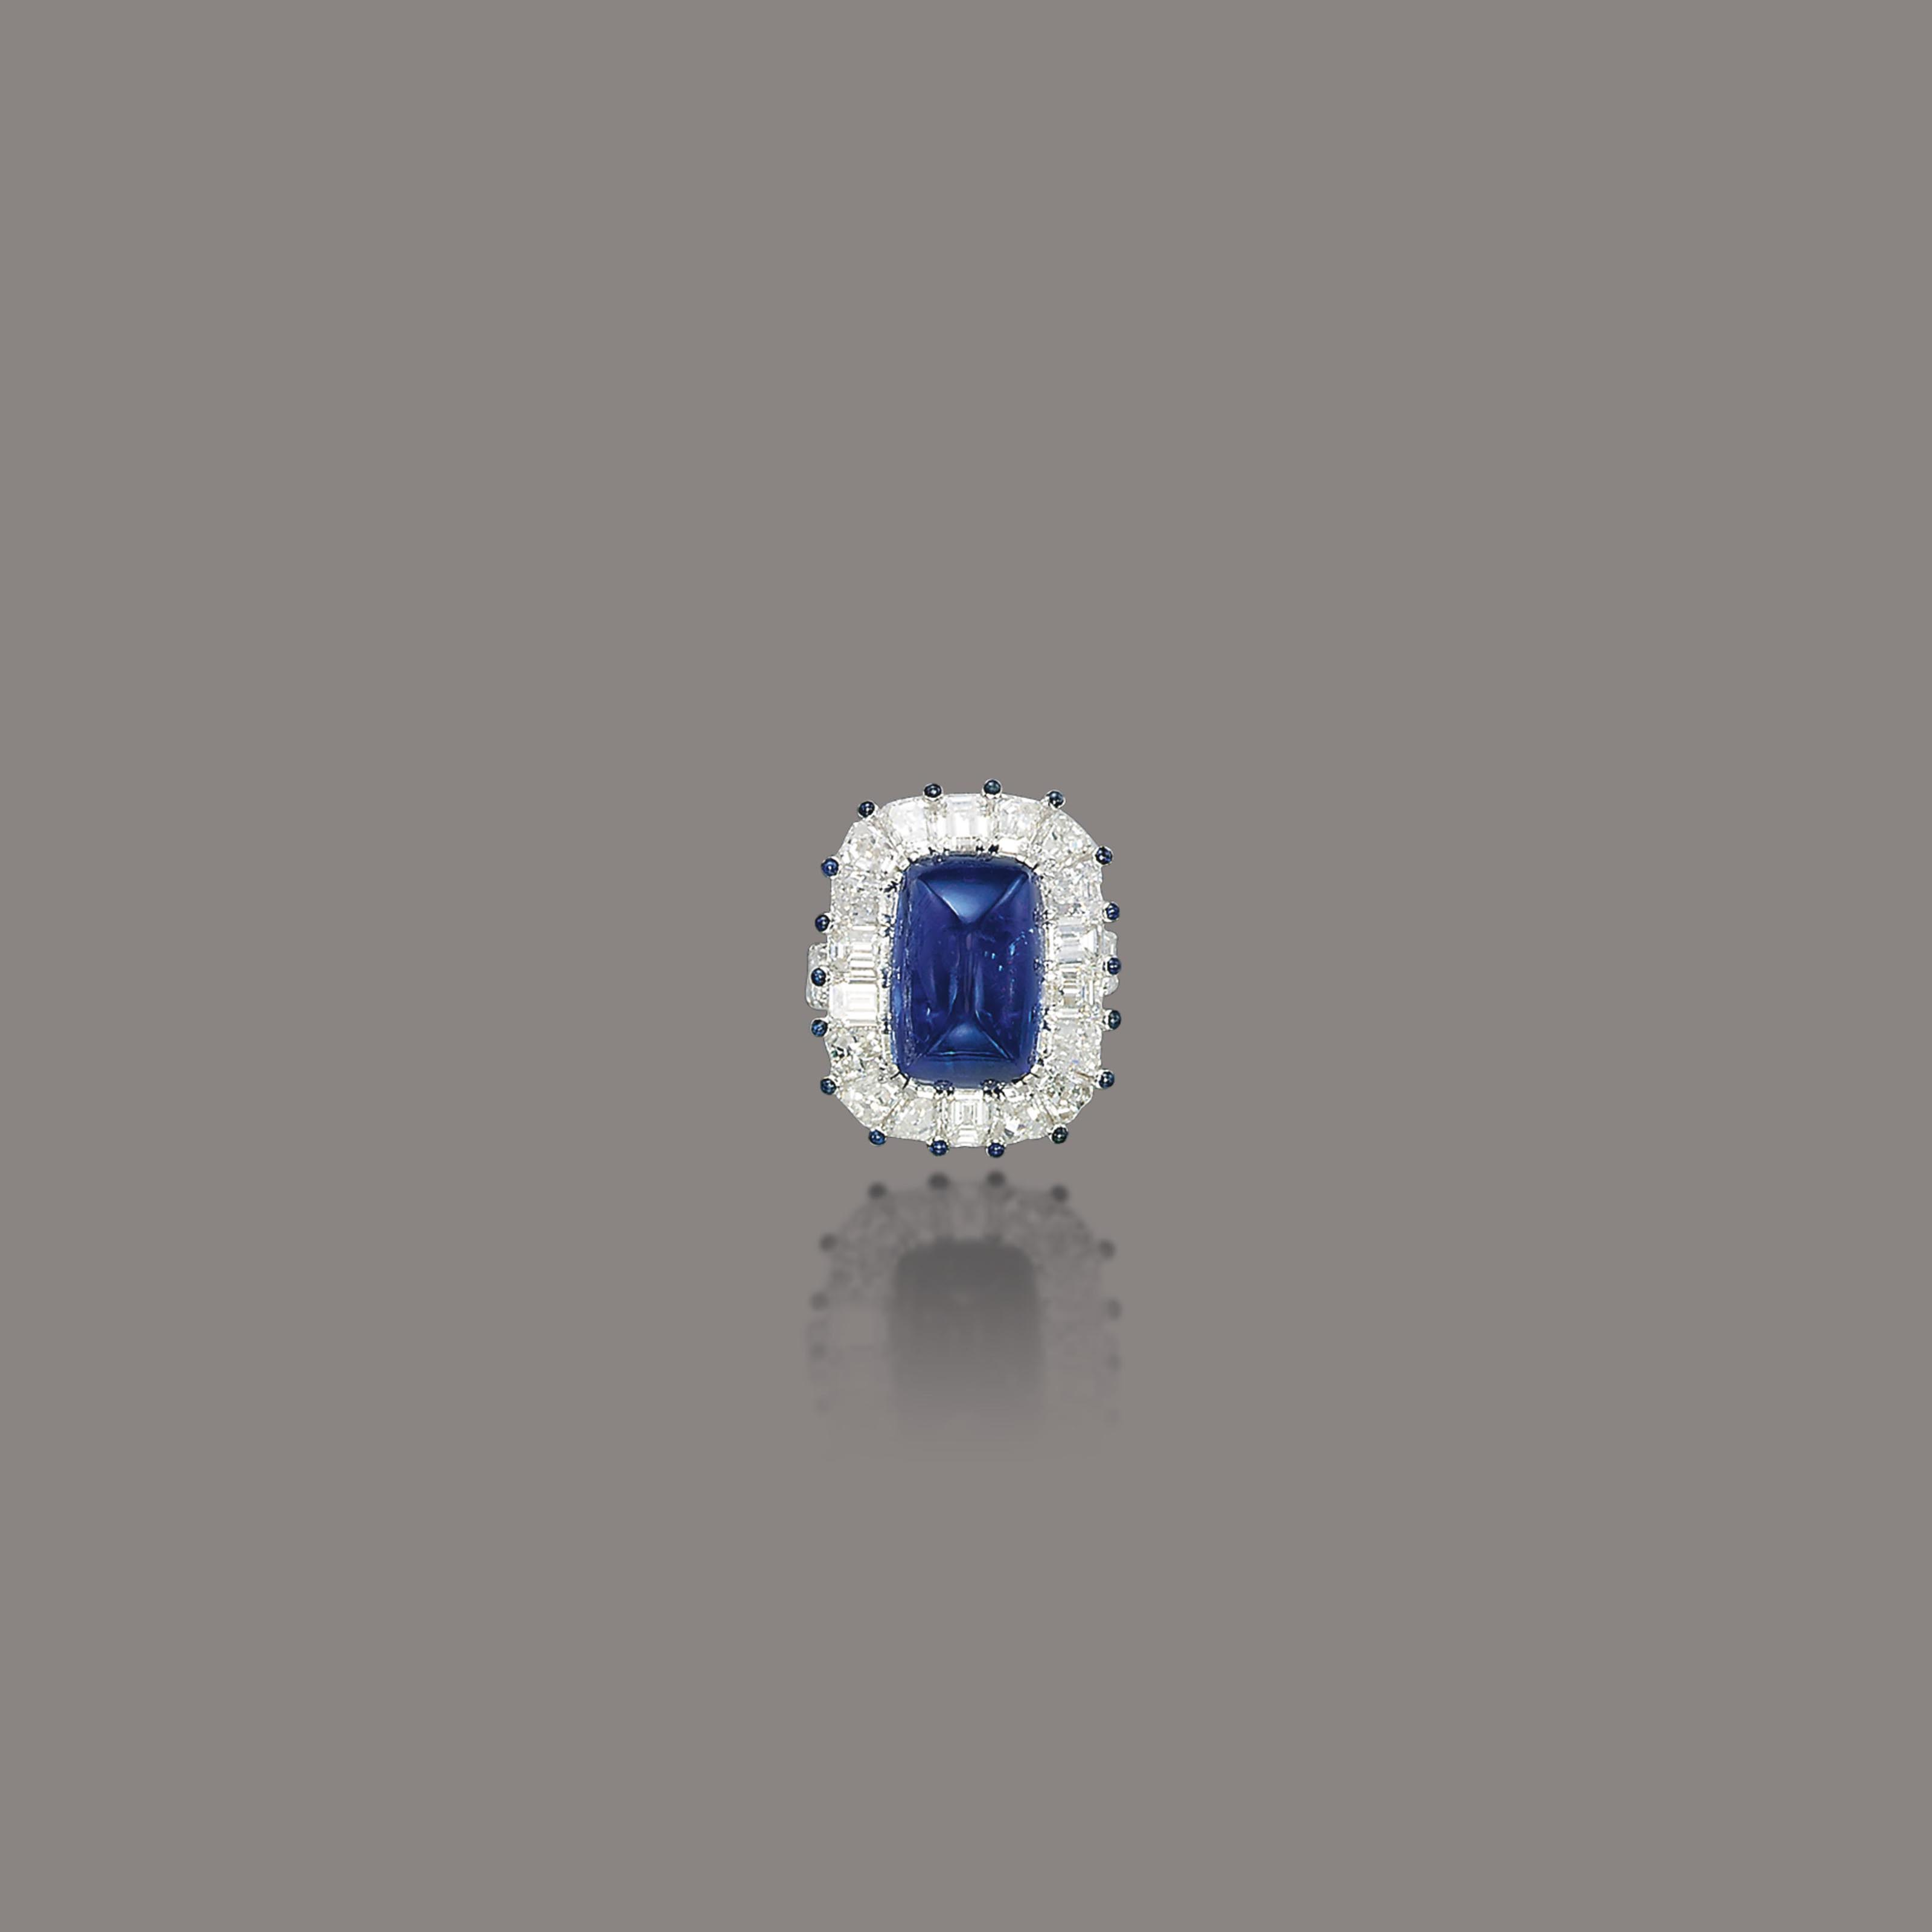 A SAPPHIRE AND DIAMOND RING, BY MOUAWAD